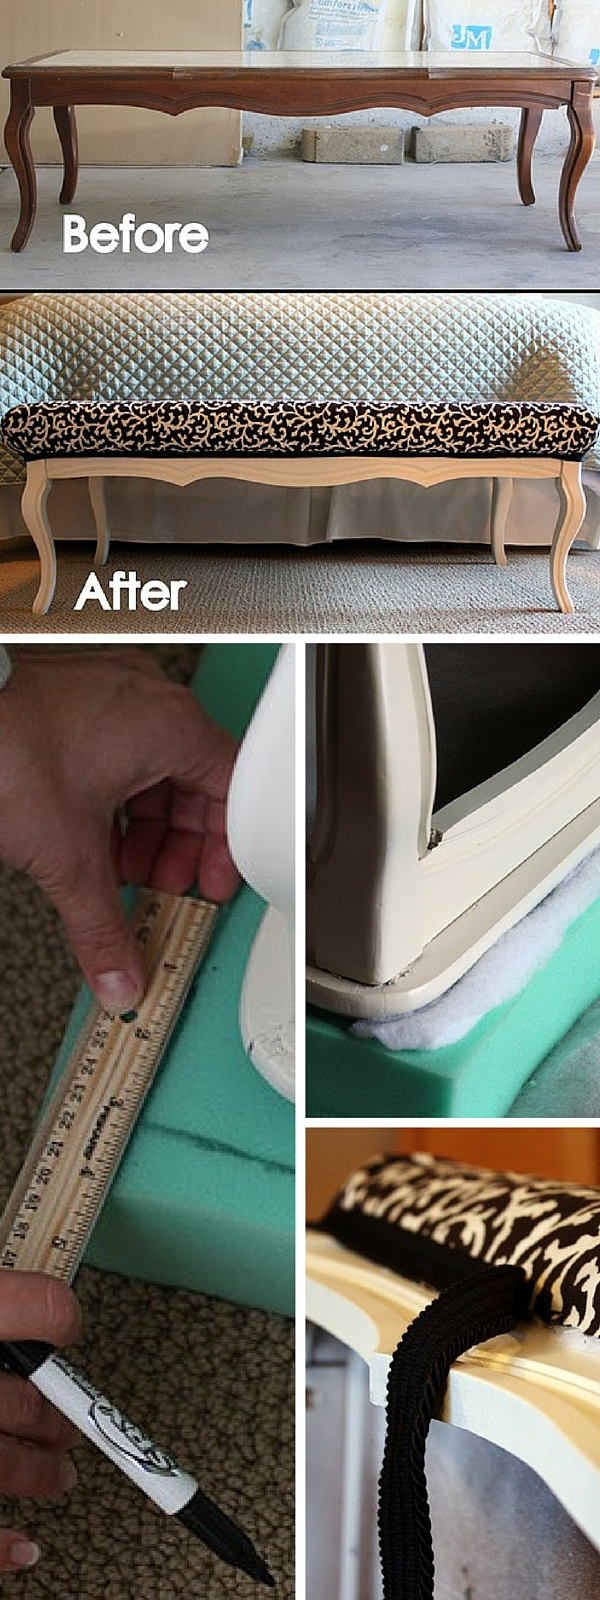 upcycled furniture upcycling reuse DIY The handy mano manomano bed